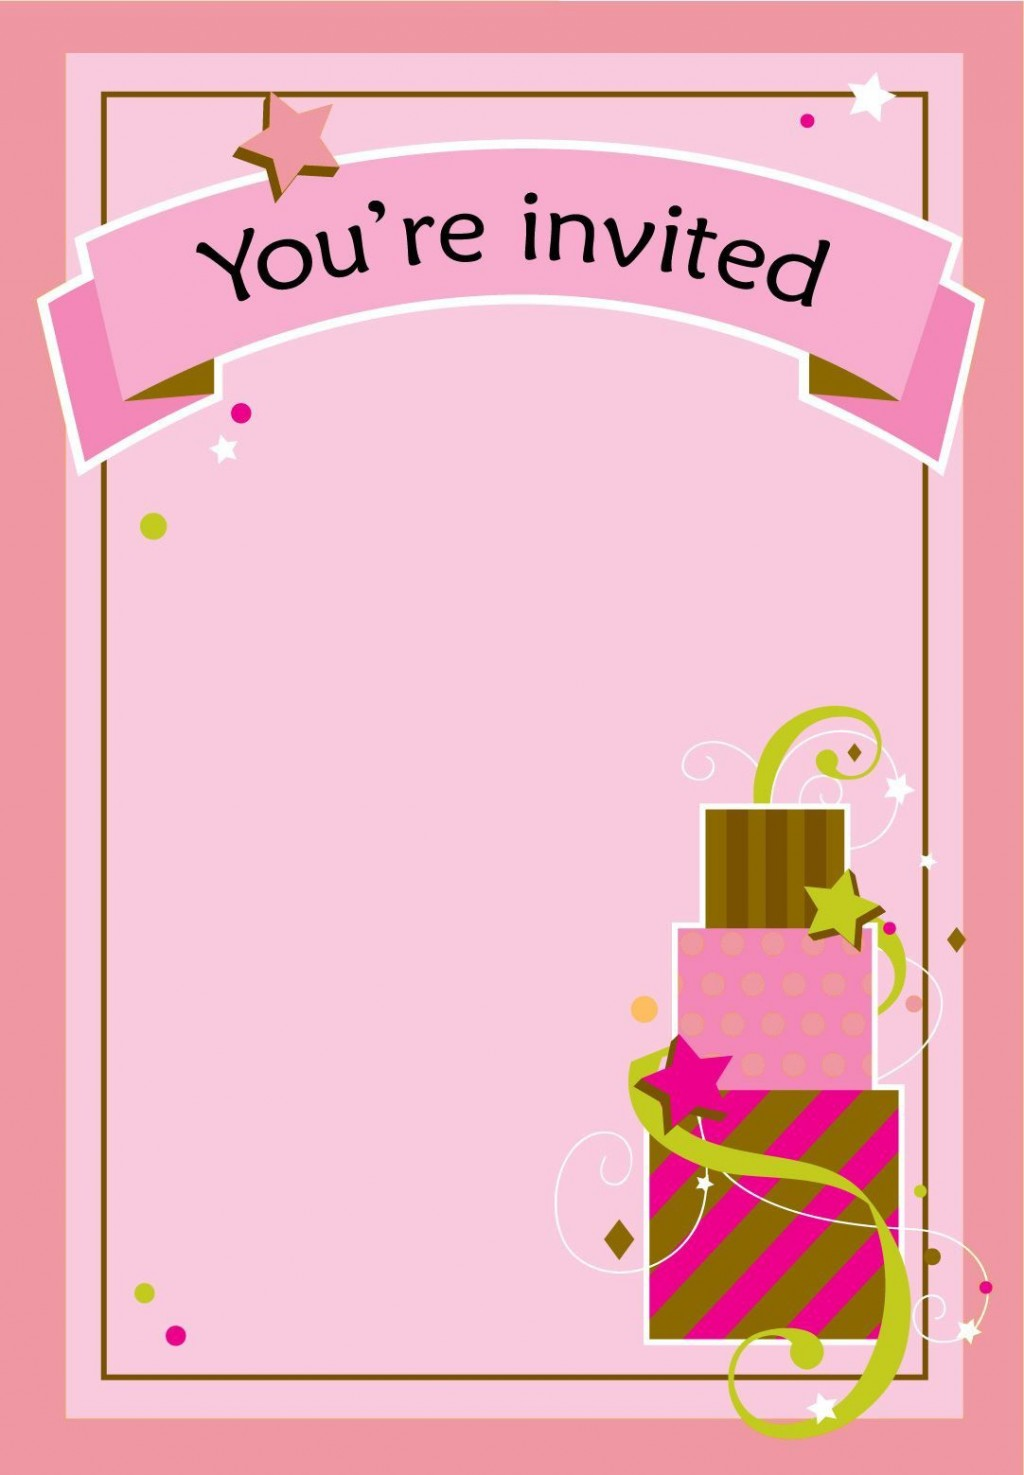 003 Awesome Free Birthday Card Invitation Template Printable Sample Large